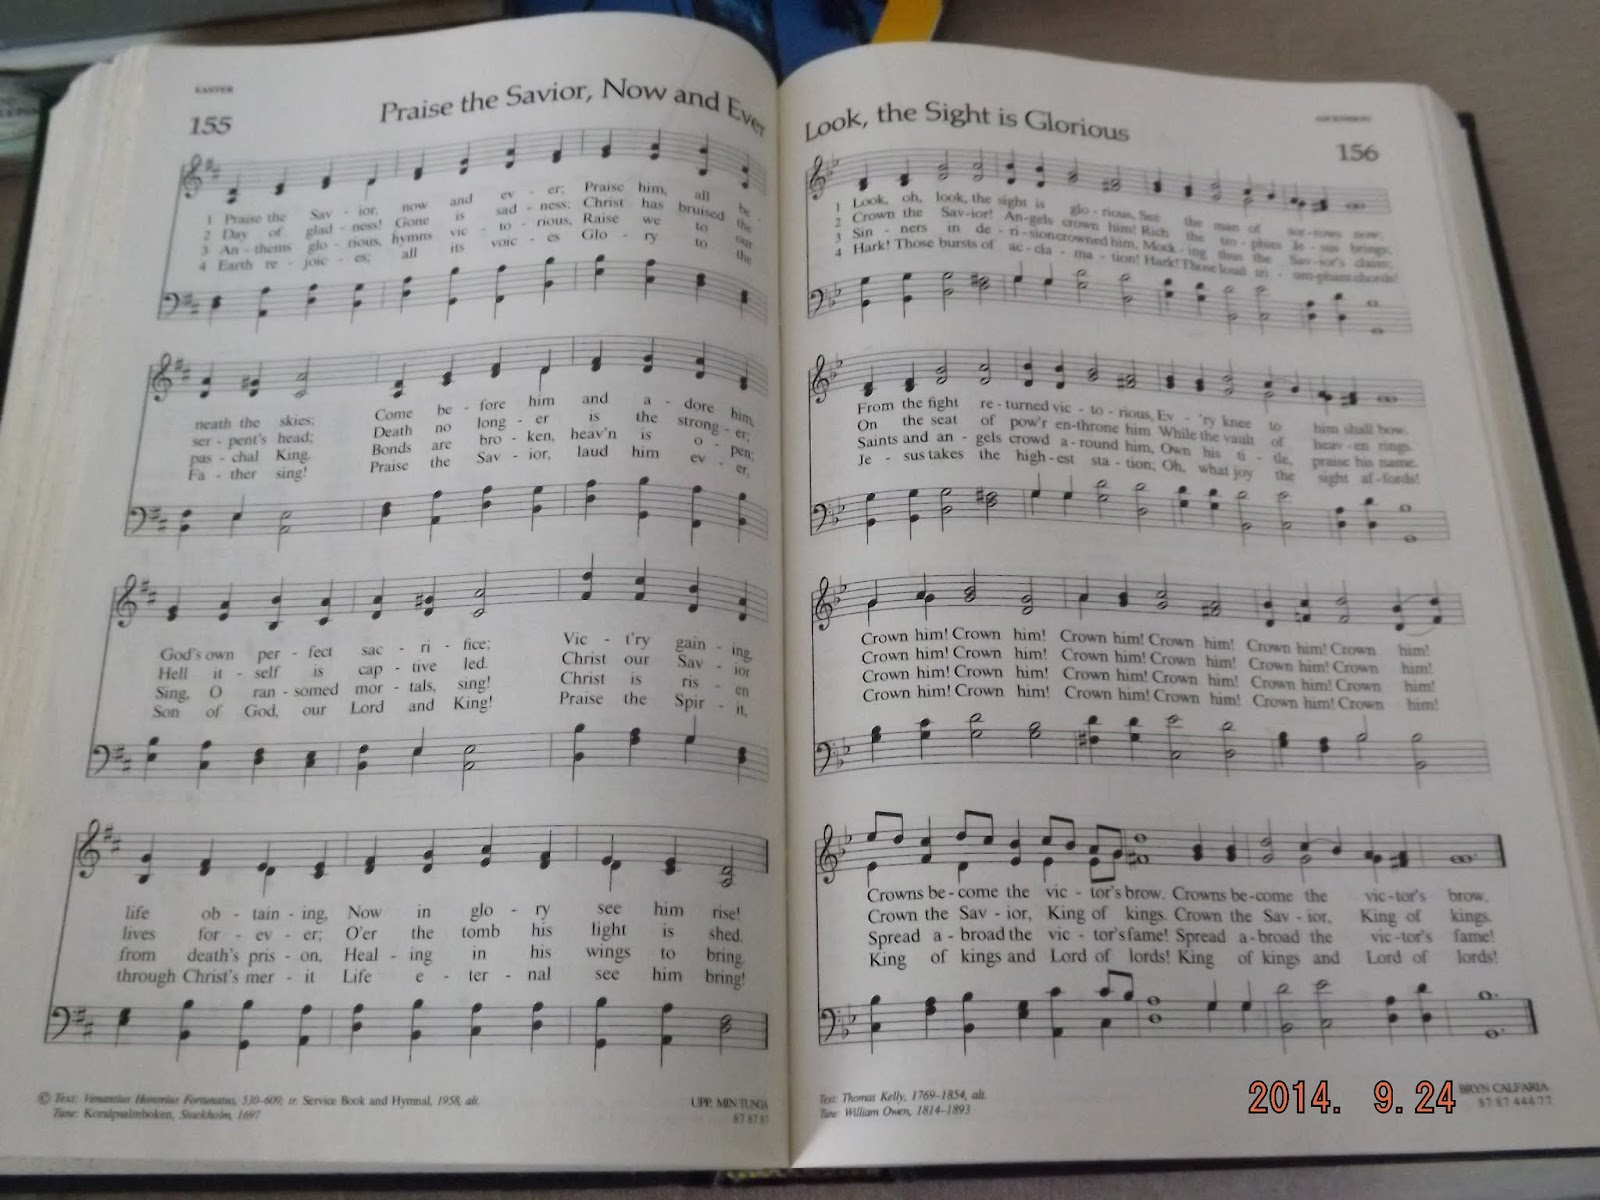 A Lutheran Hymnal that I found at the thrift store to use for art journaling.